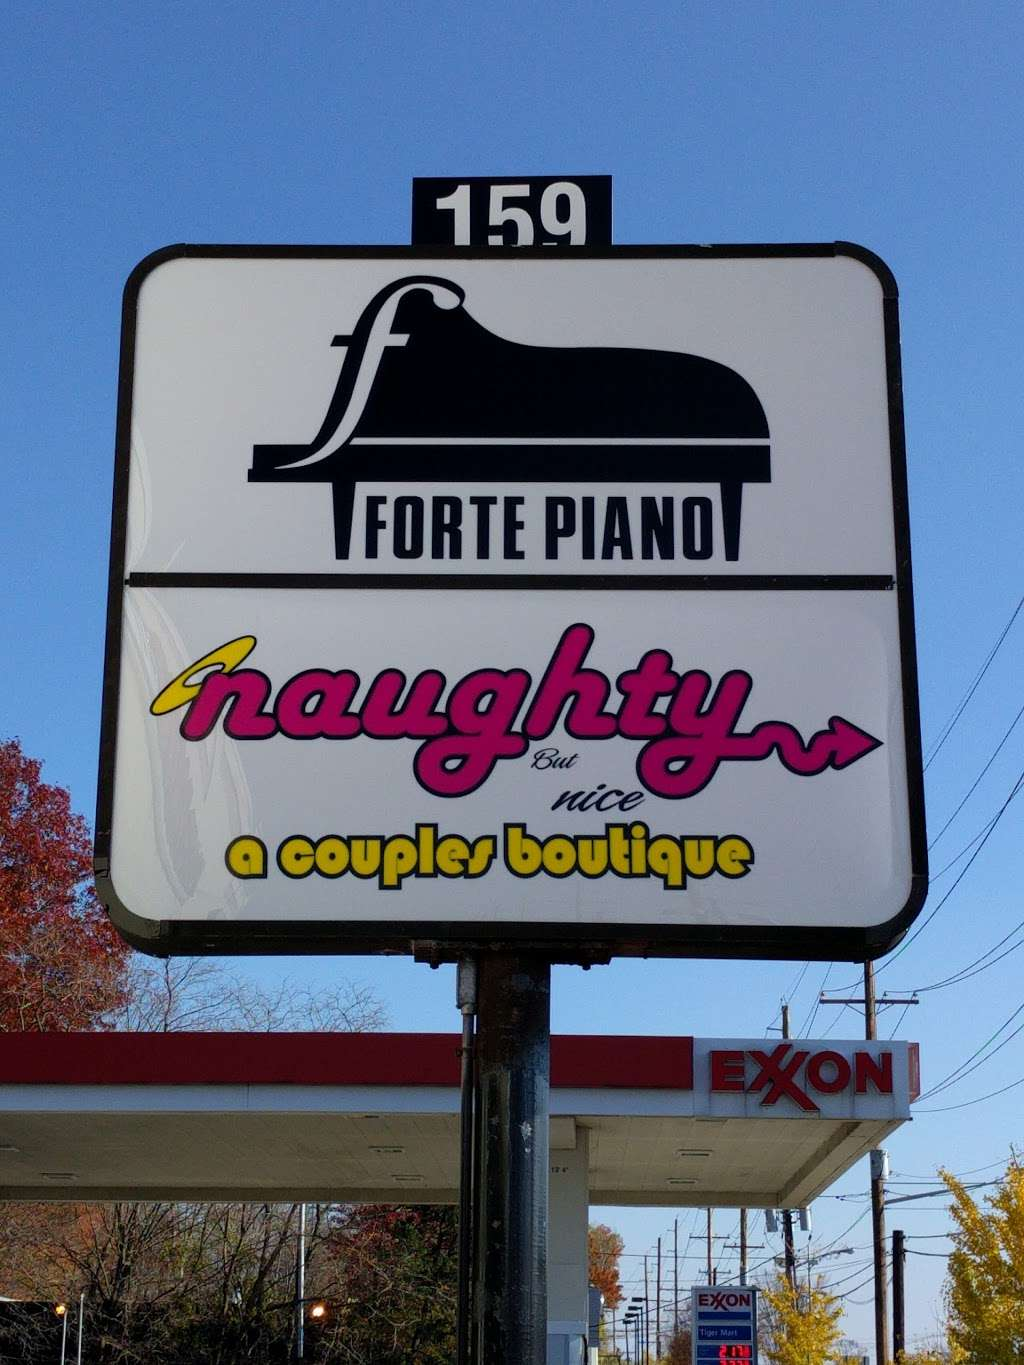 Naughty: A Couple's Boutique - clothing store  | Photo 5 of 6 | Address: 159 NJ-4, Paramus, NJ 07652, USA | Phone: (201) 843-2100